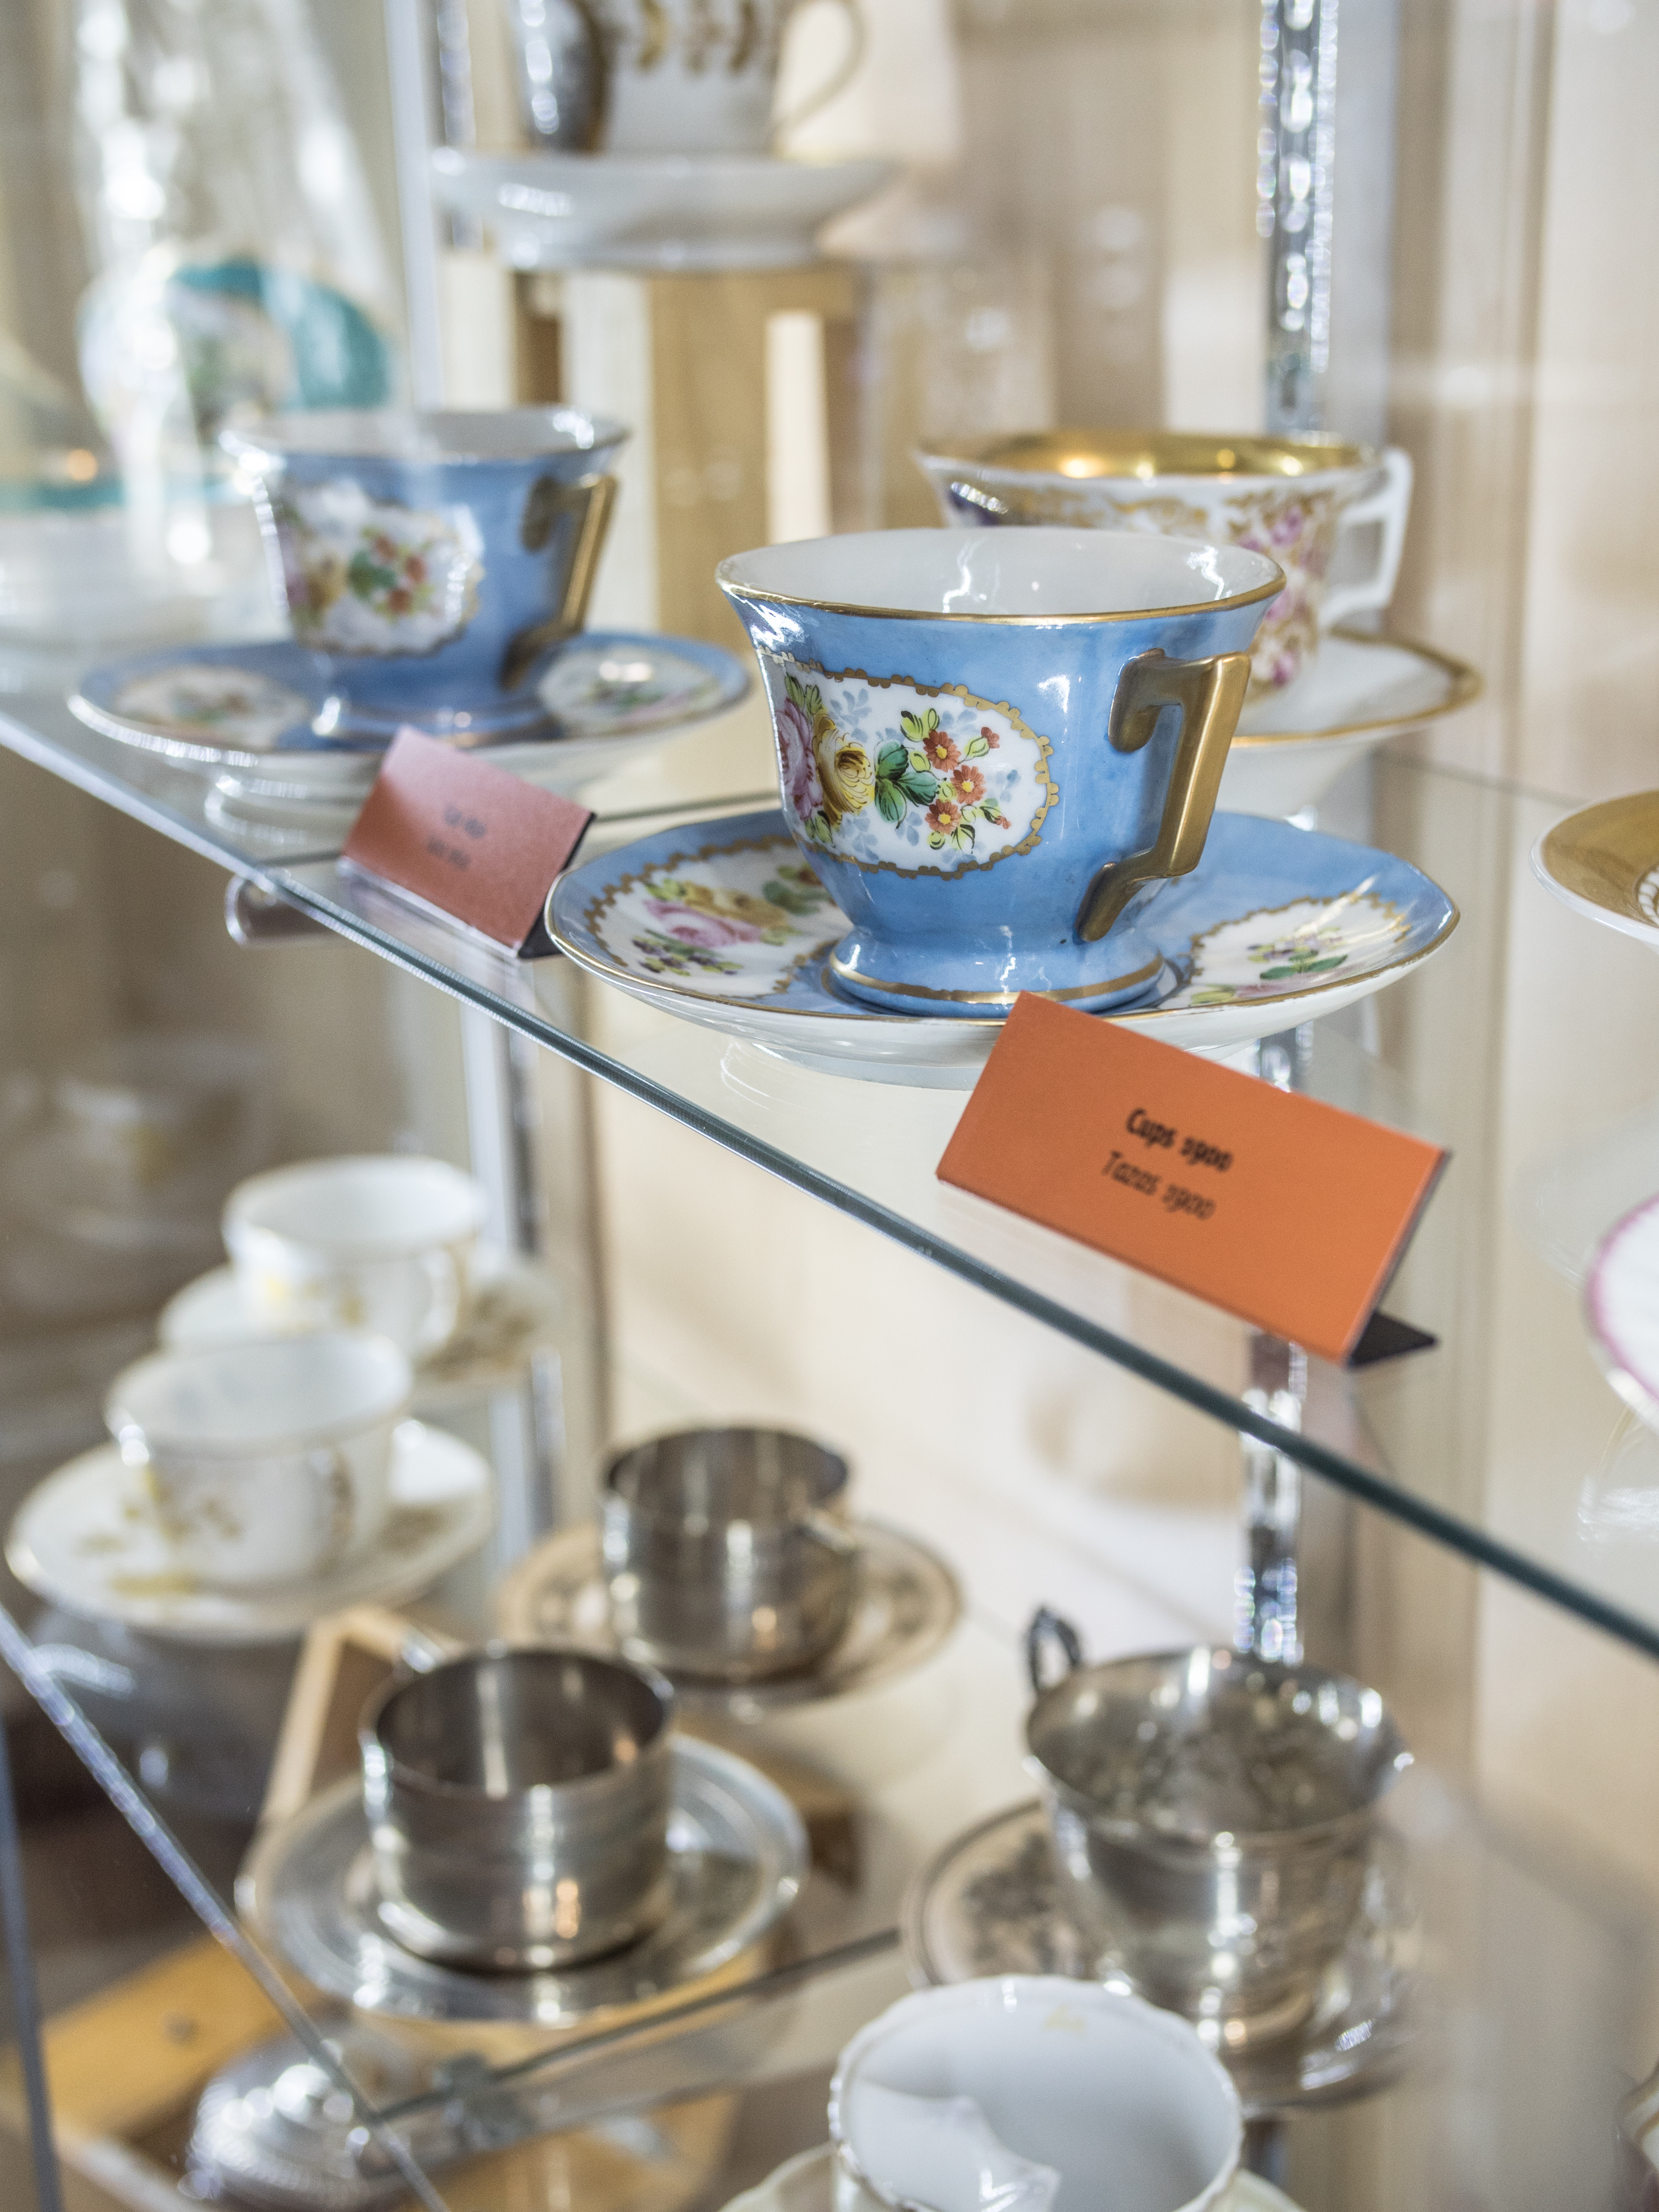 When Europeans adopted chocolate for drinking, they also developed decorative cups and saucers.